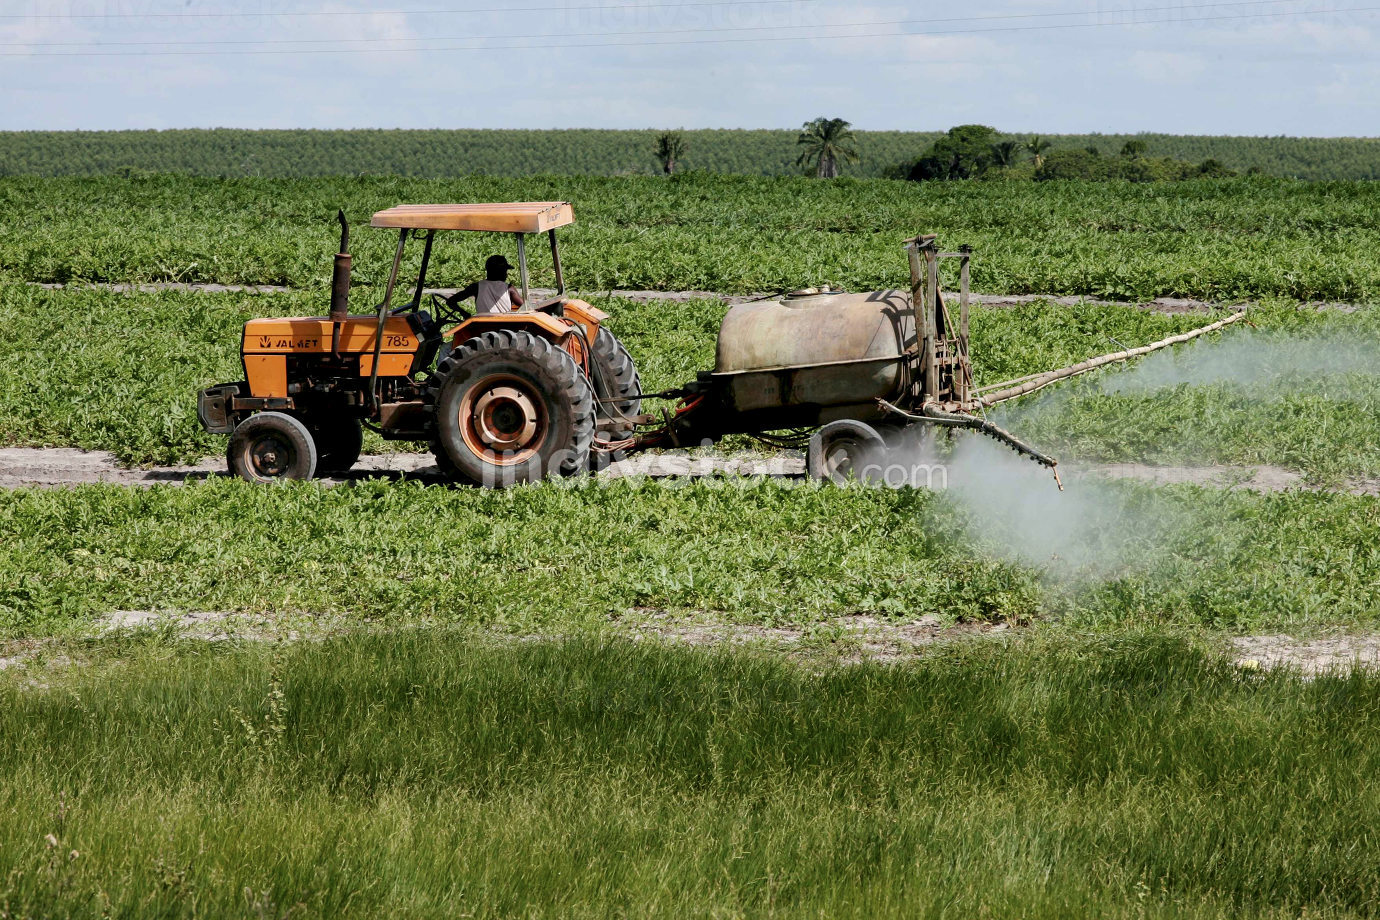 eunapolis, bahia Brazil, april 22, 2010, crop protection against crop protection, Tractor is seen during pesticide spraying on watermelon plantation in Eunapolis City.